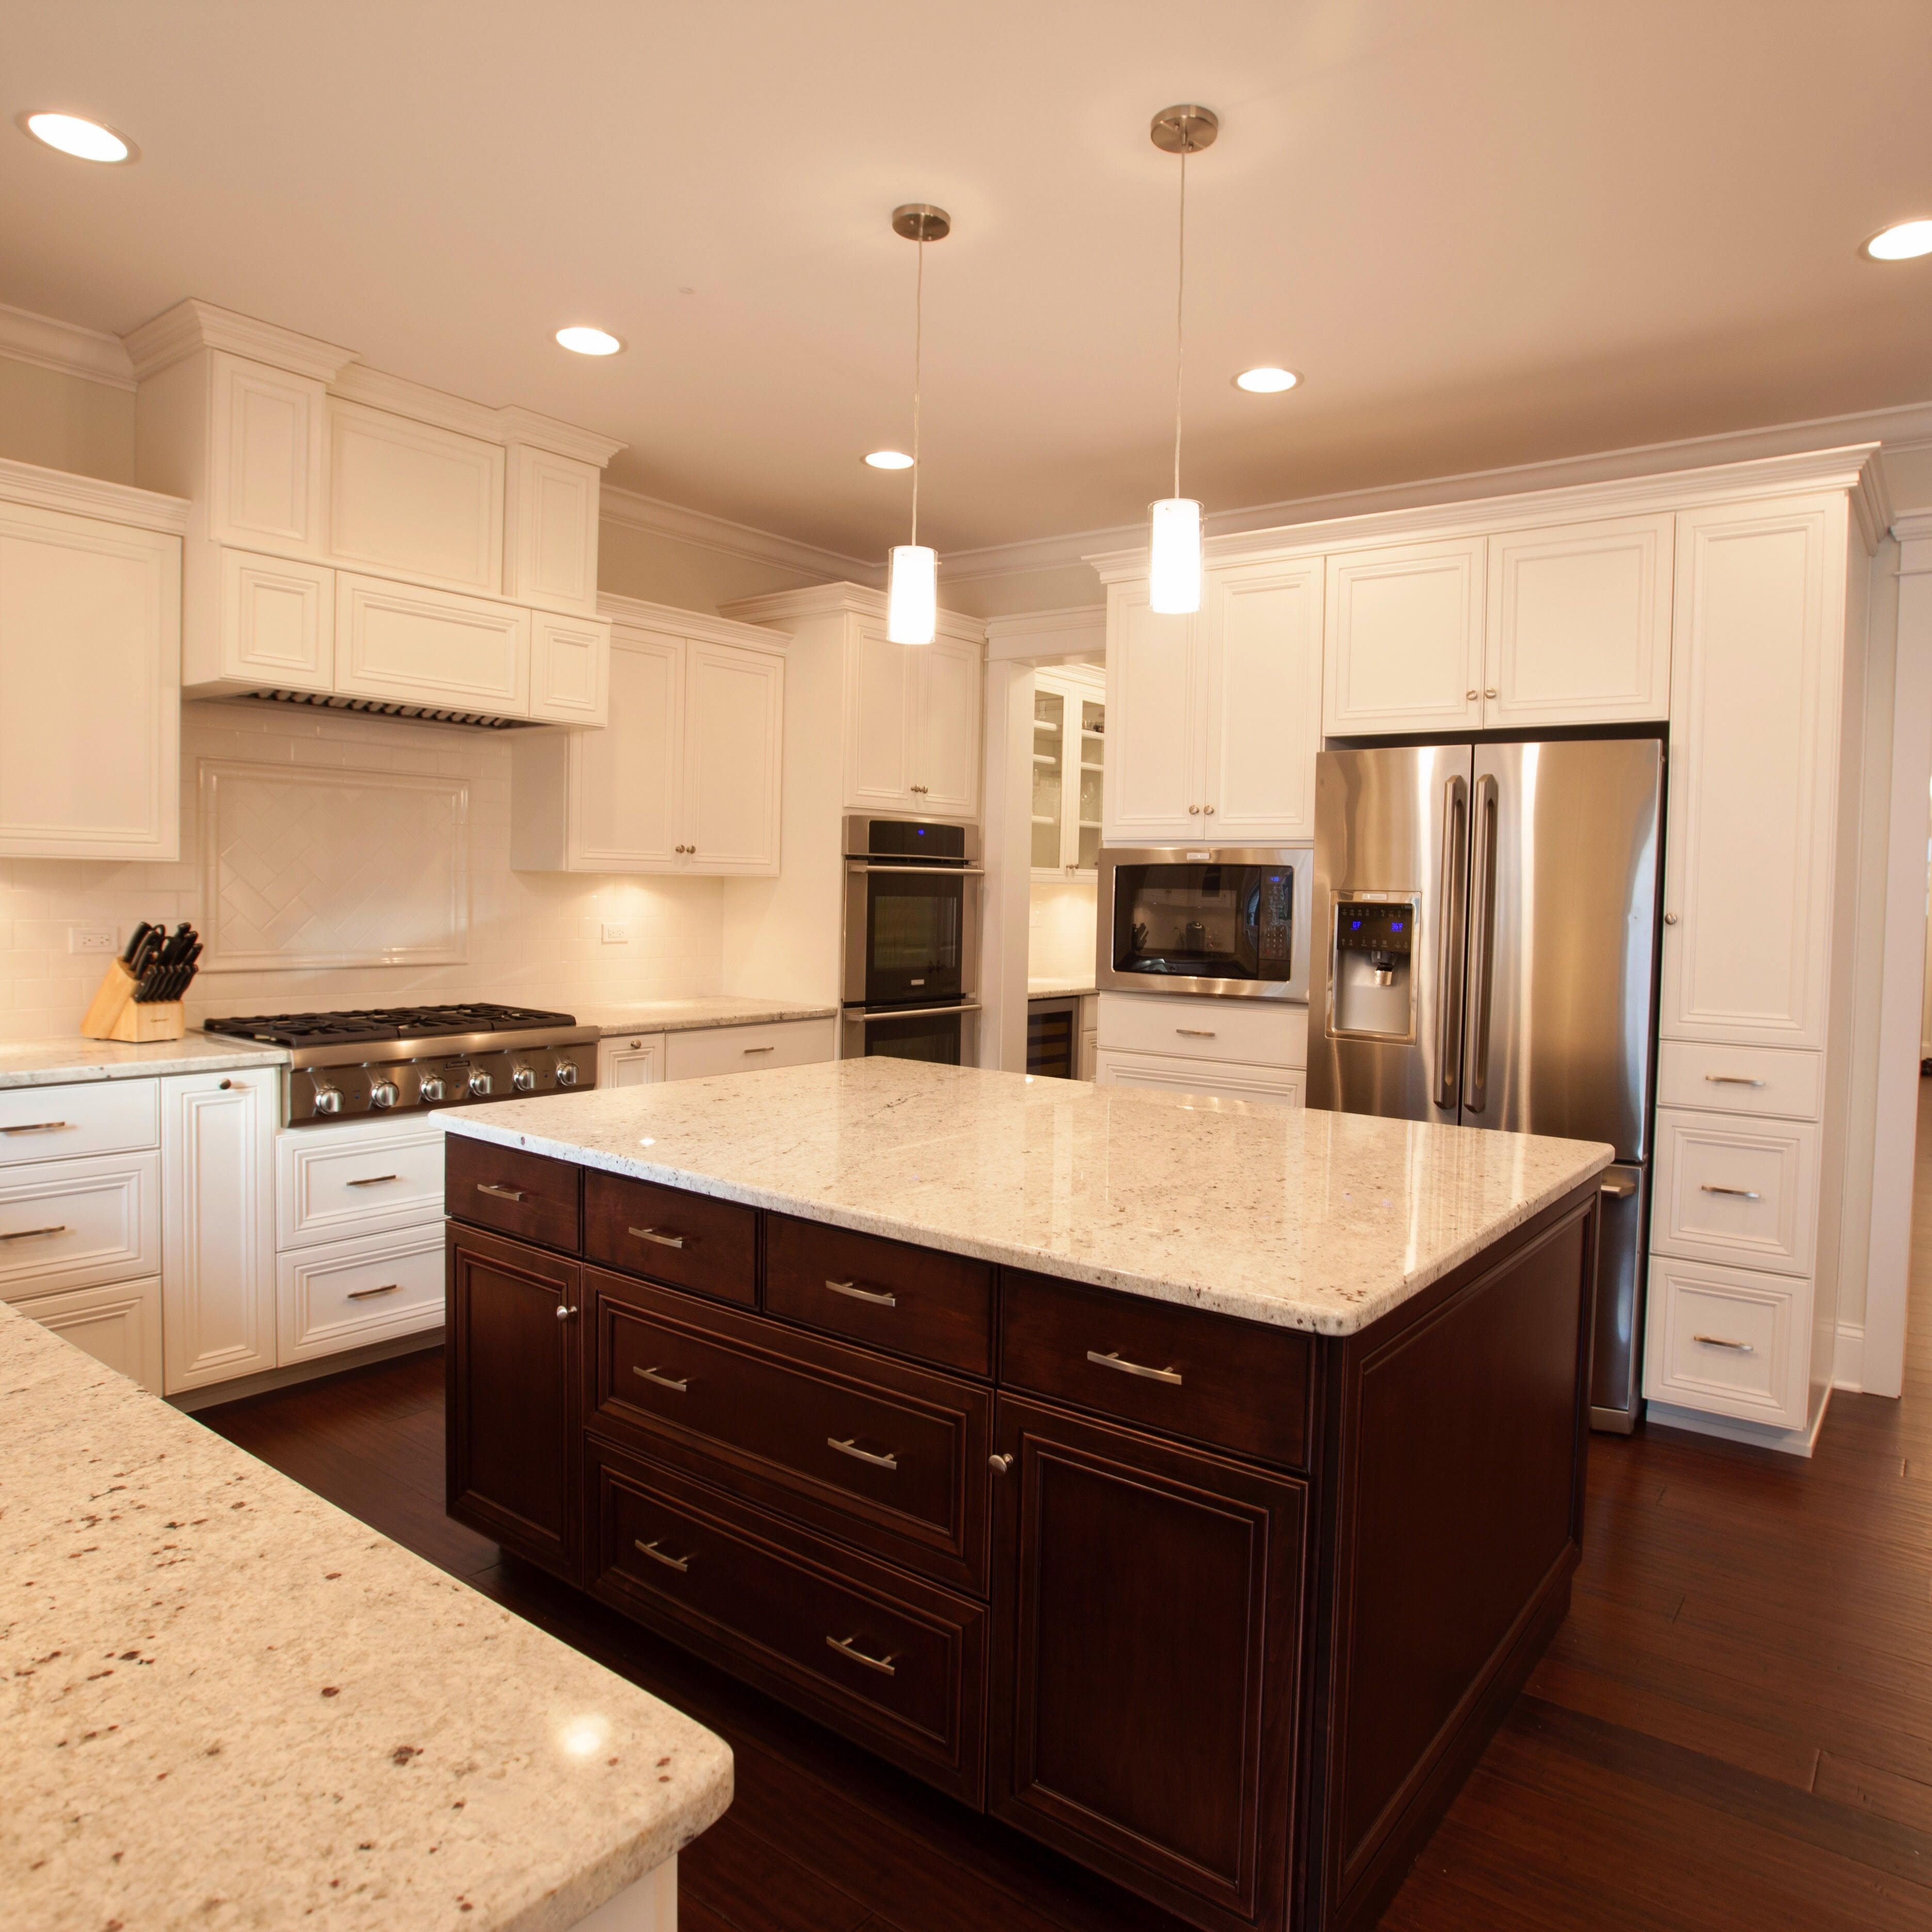 Interesting Kitchen Islands From Tri Star Kitchen Islands Have Become The Standard For N Modern Kitchen Cabinet Design Cost Of Kitchen Cabinets Kitchen Remode